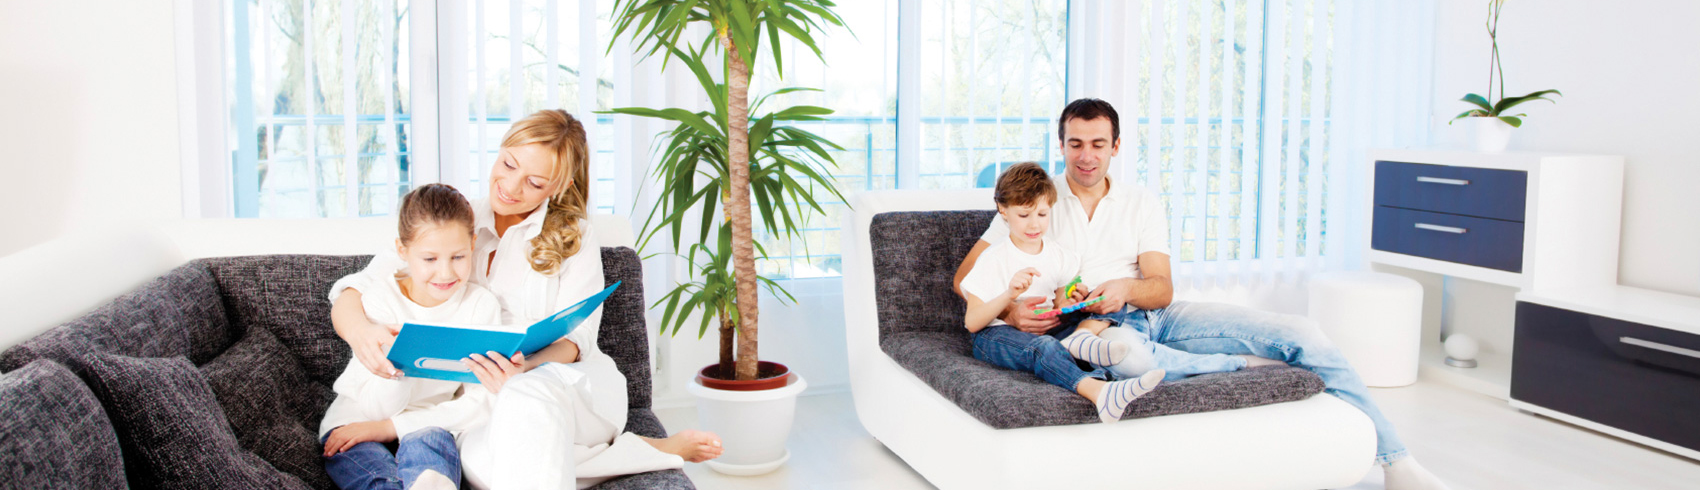 Comfort Heating and Cooling Systems